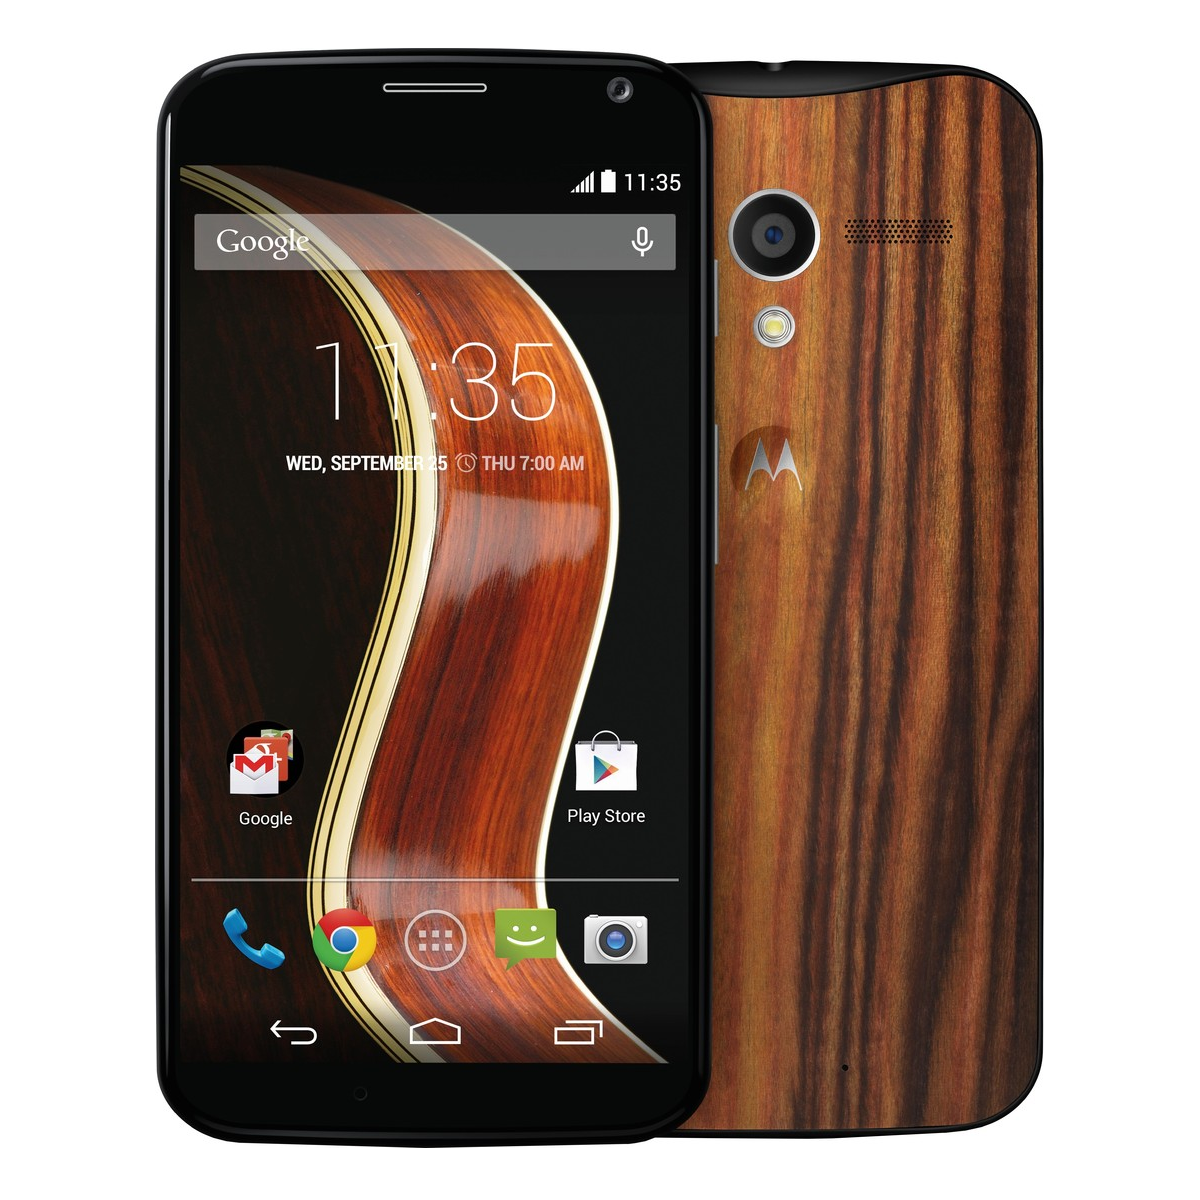 motorola moto x wifi gps android 4g lte phone sprint in black with wood back panel good. Black Bedroom Furniture Sets. Home Design Ideas